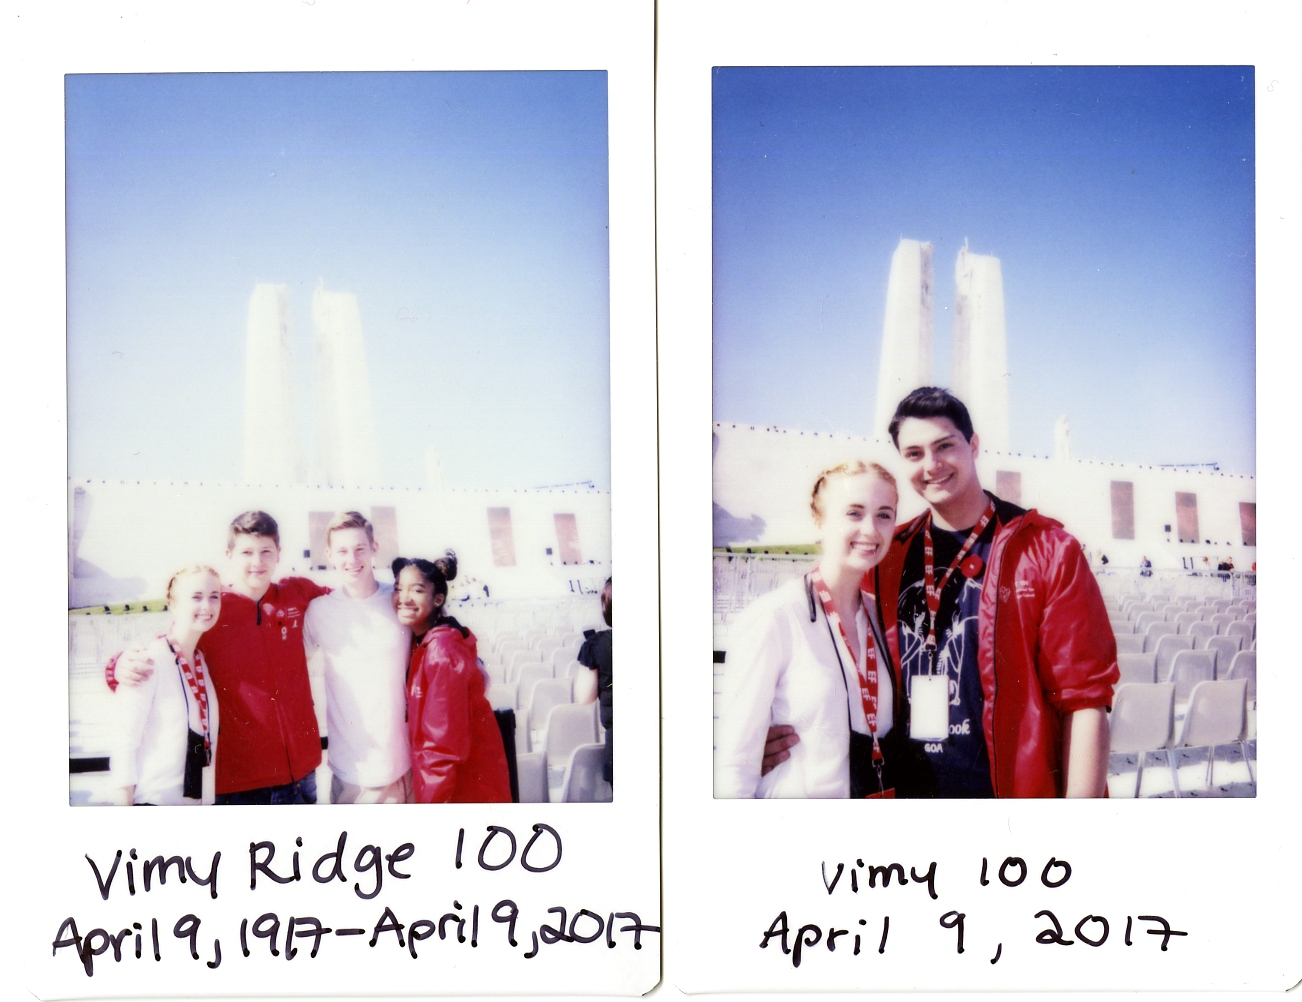 Two Poleroids of Elizabeth and her friends standing in front of Vimy Ridge Memorial Monument